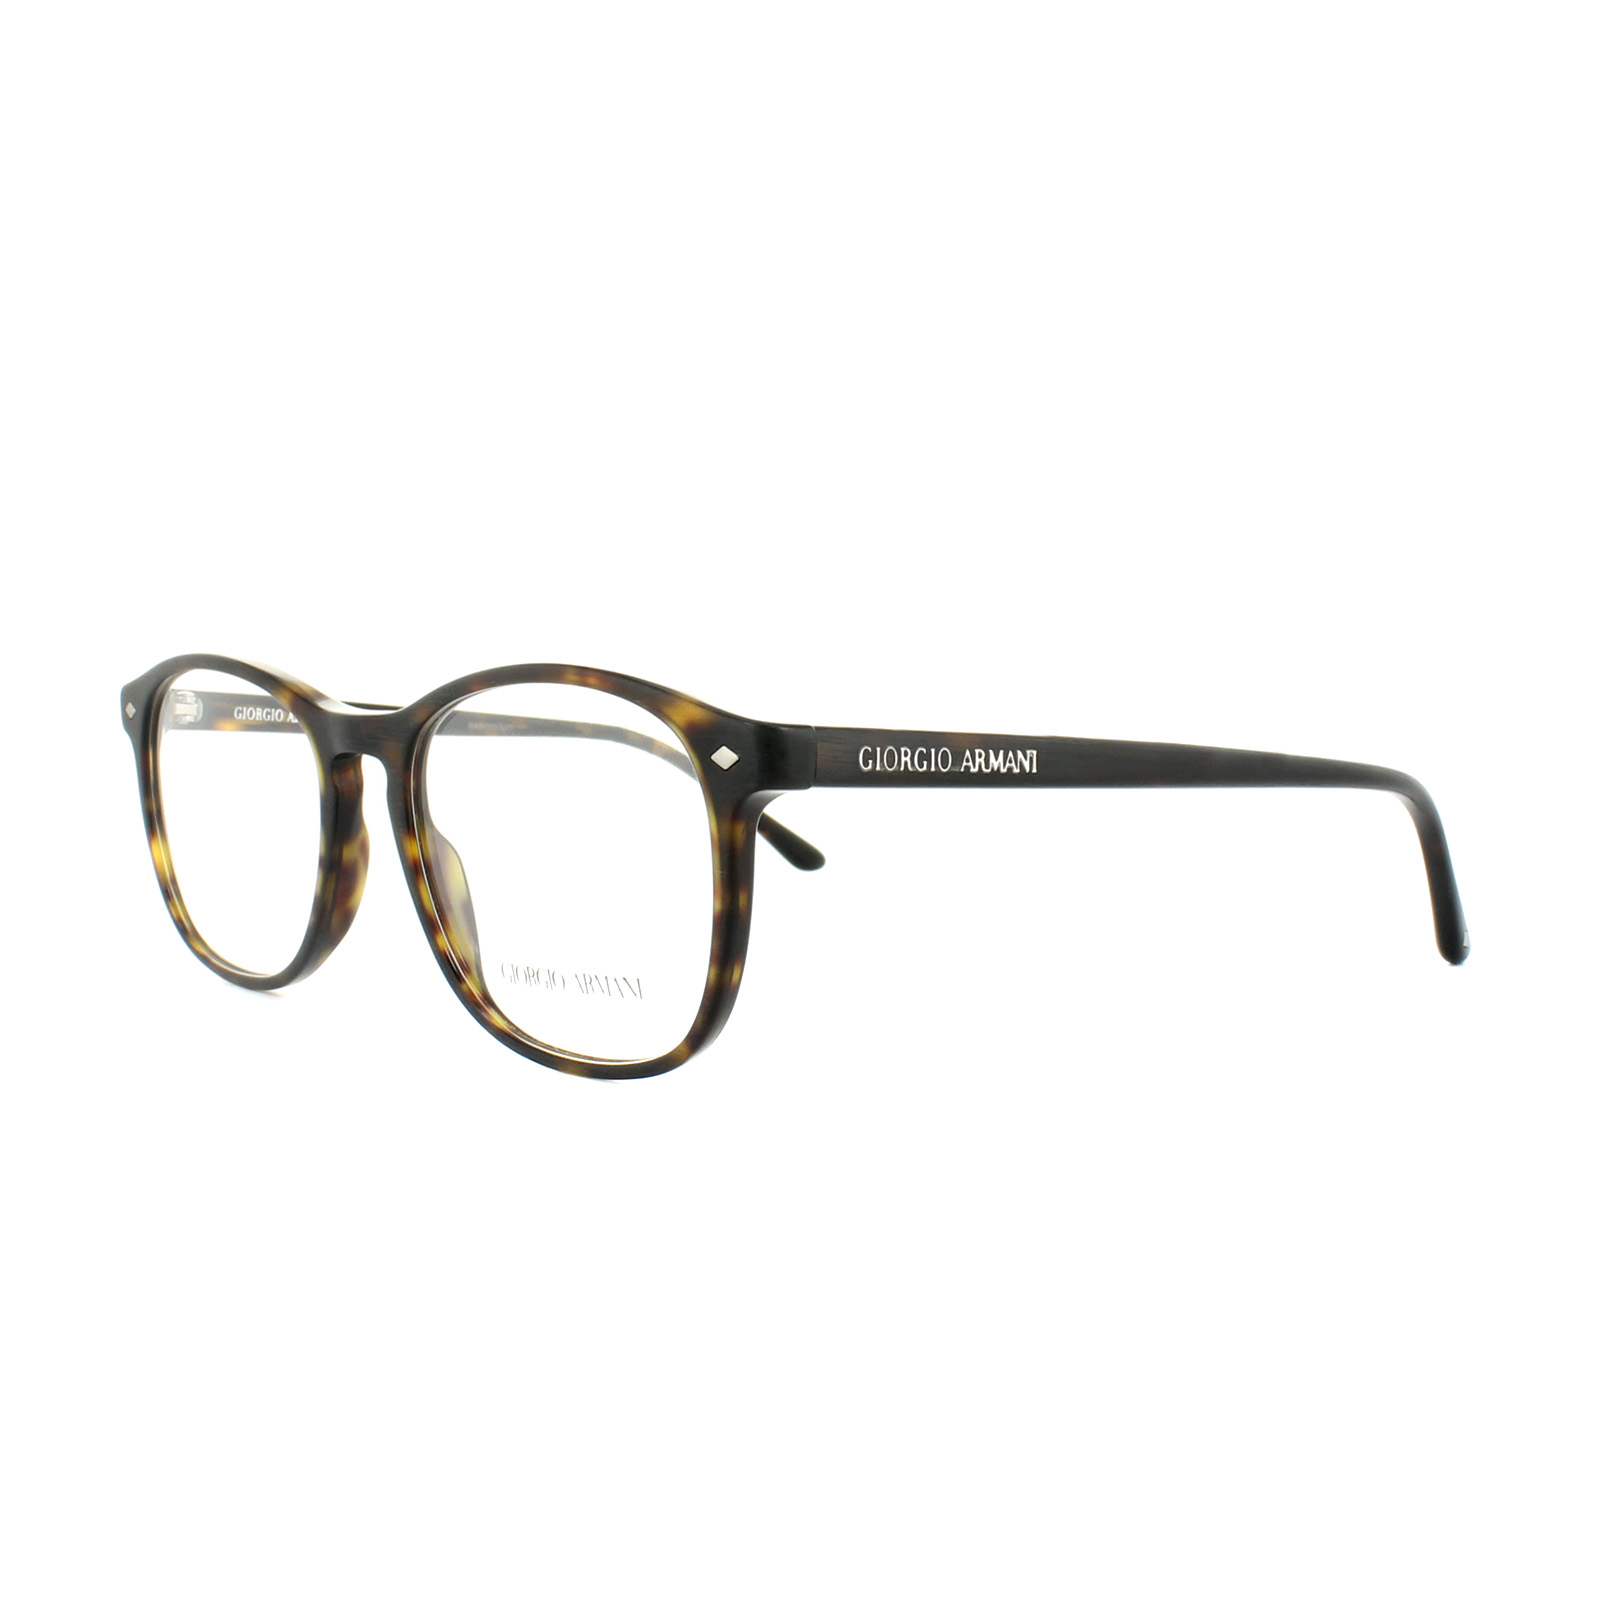 Cheap Giorgio Armani AR 7003 Glasses Frames - Discounted Sunglasses